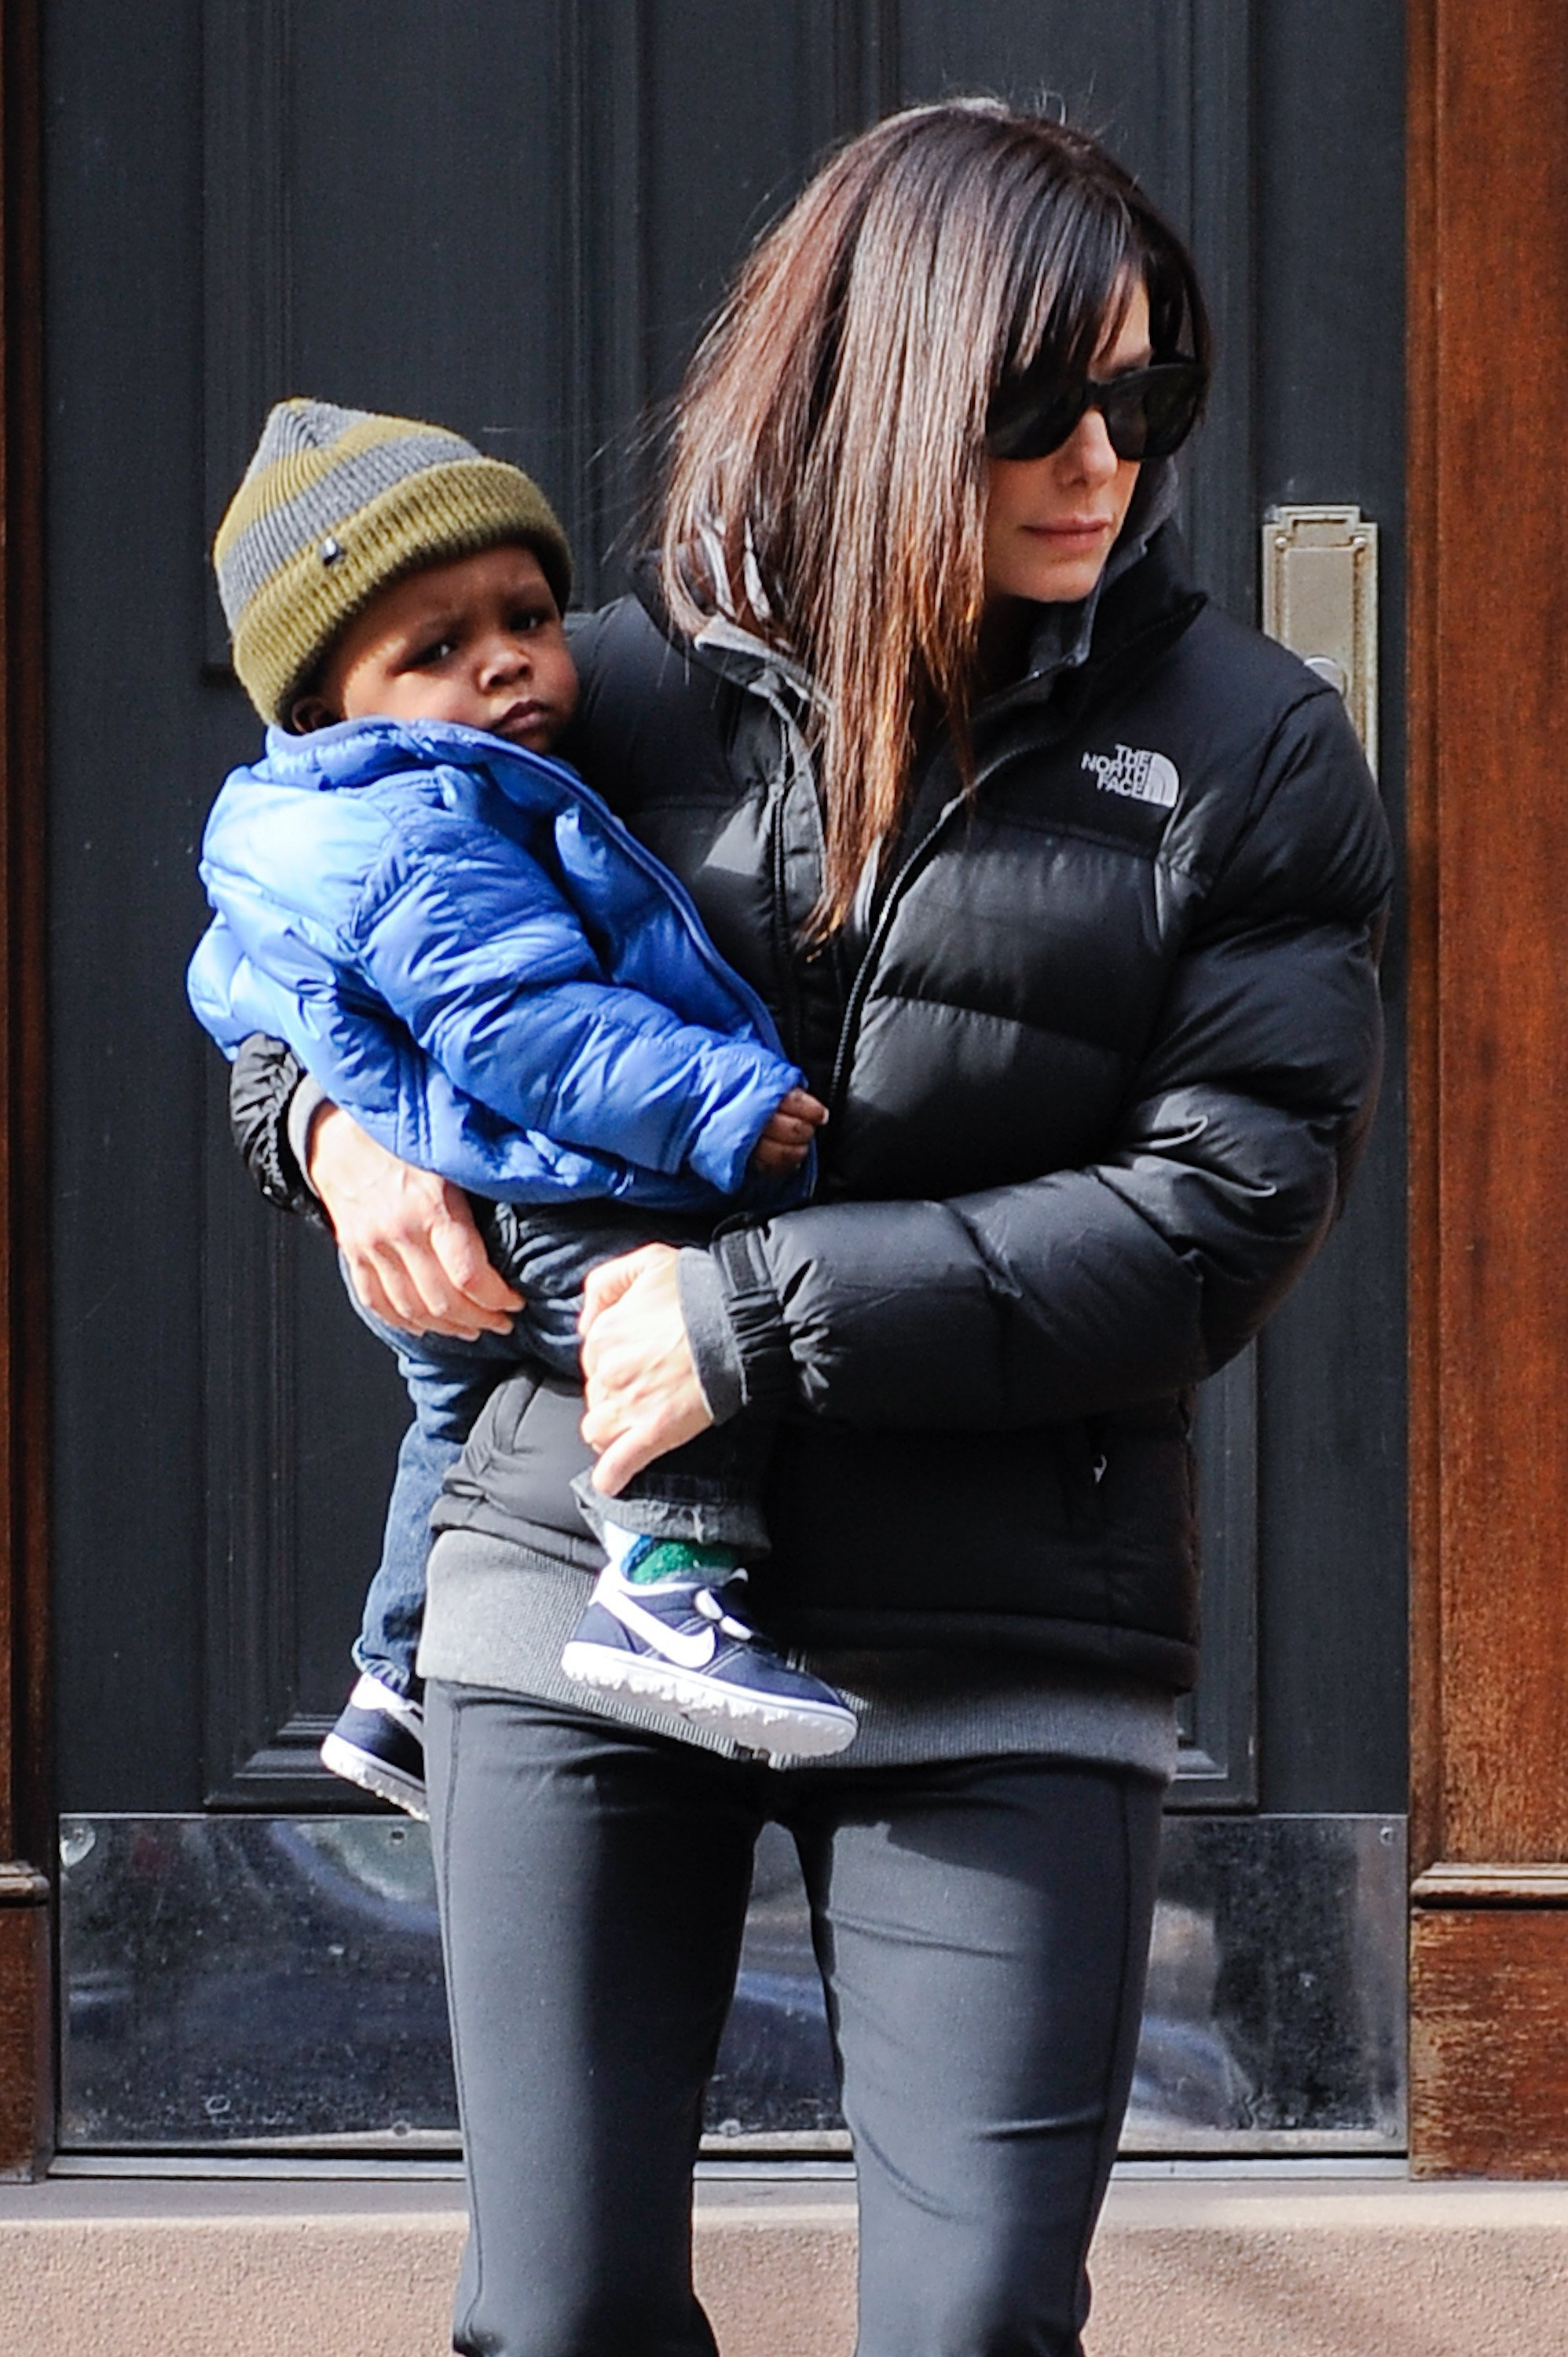 Sandra Bullock walking in public holding one of her children | Photo: Getty Images